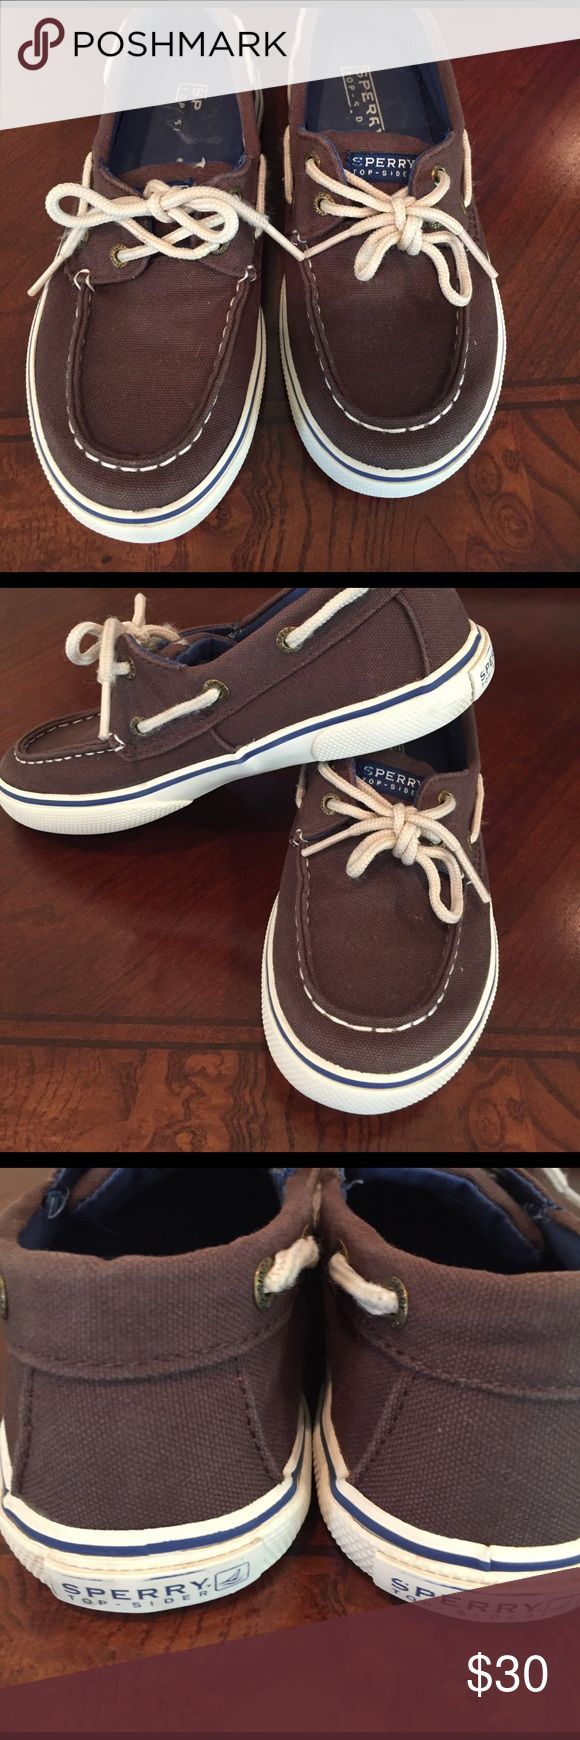 Sperry shoes for kid Excellent condition brown sperrys used a couples of times Sperry Top-Sider Shoes Sneakers